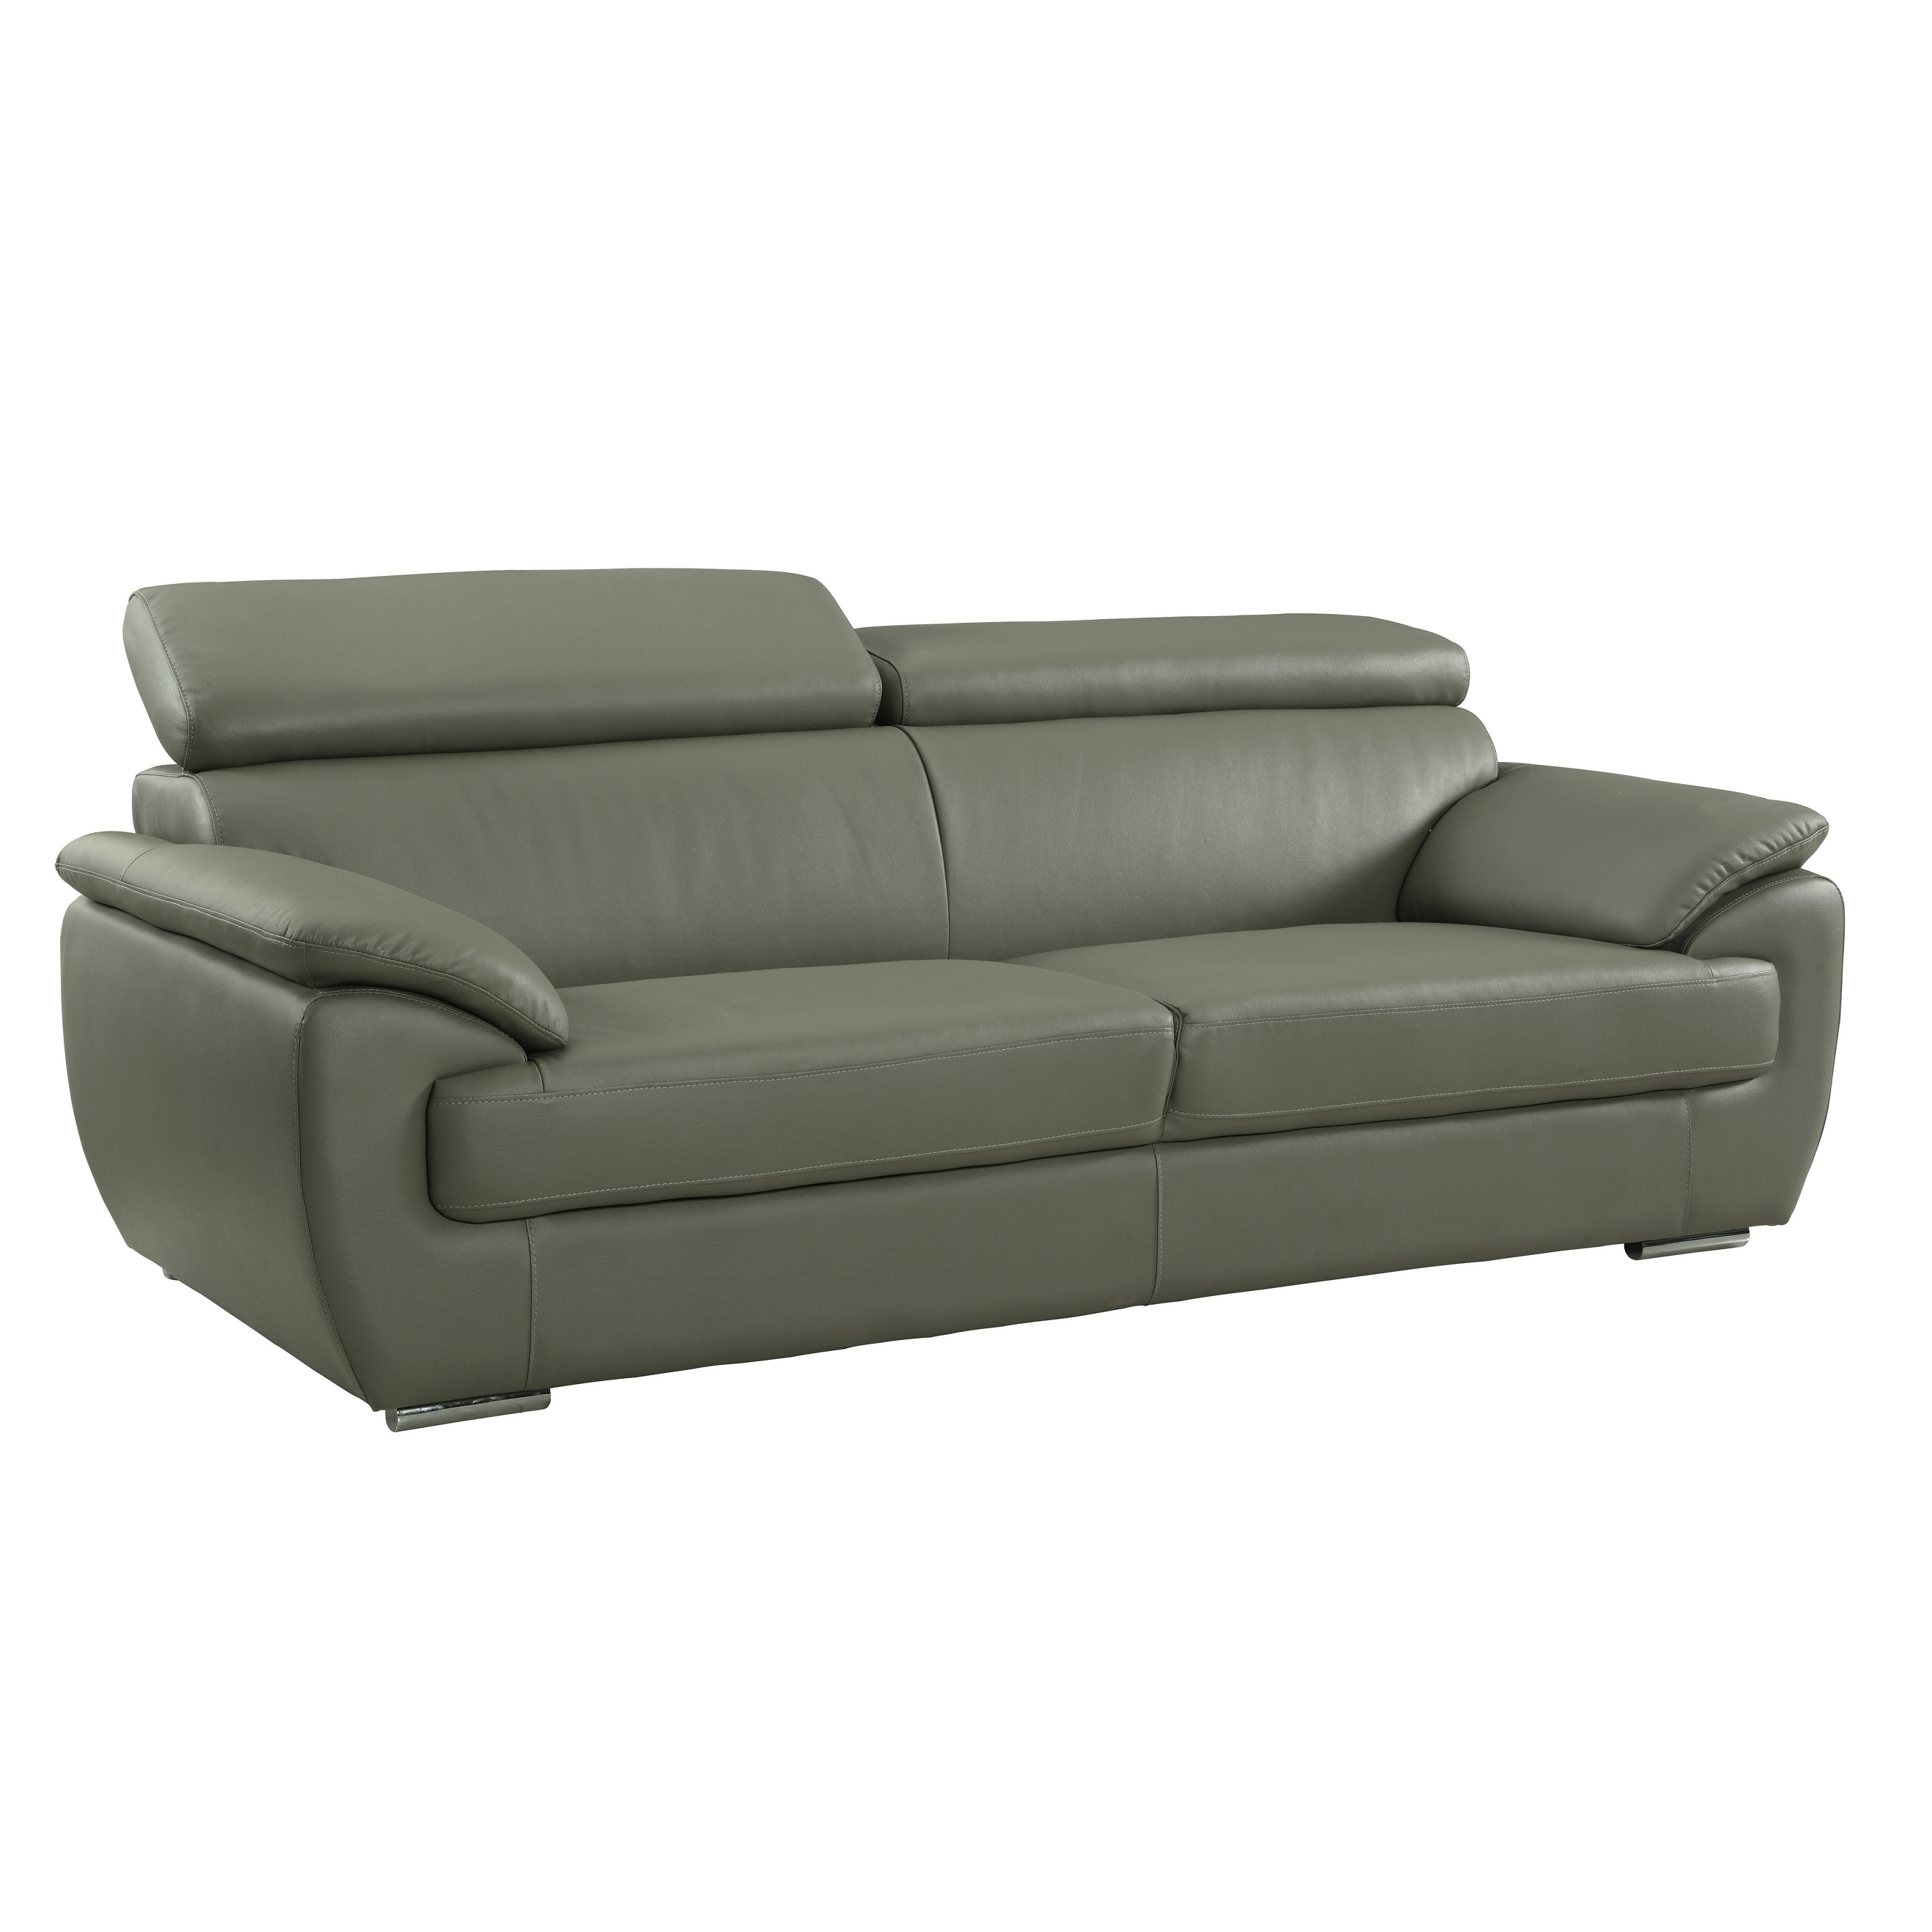 Grey Leather Sofas Couches Online At Our Best Living Room Furniture Deals